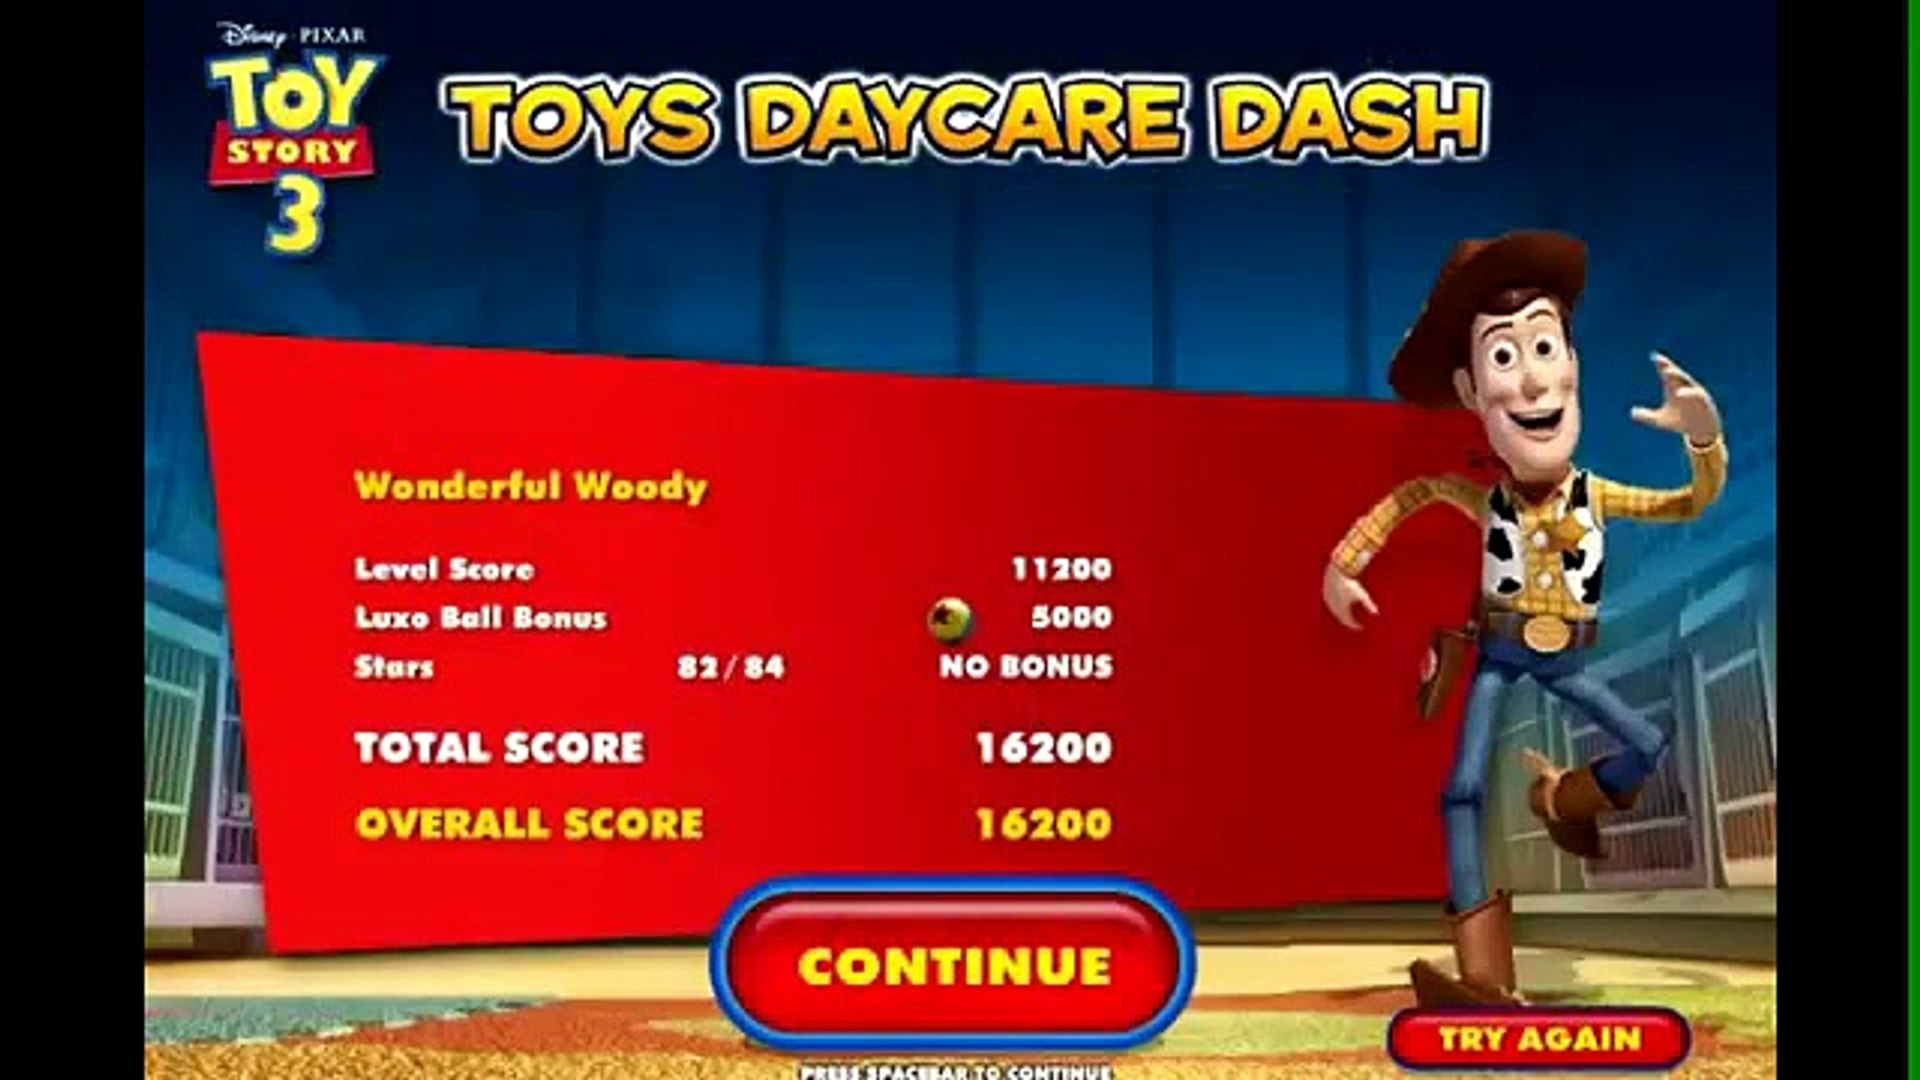 Toy Story 3 HD  - Day Care Dash - Toy Story 3 Cartoon Game